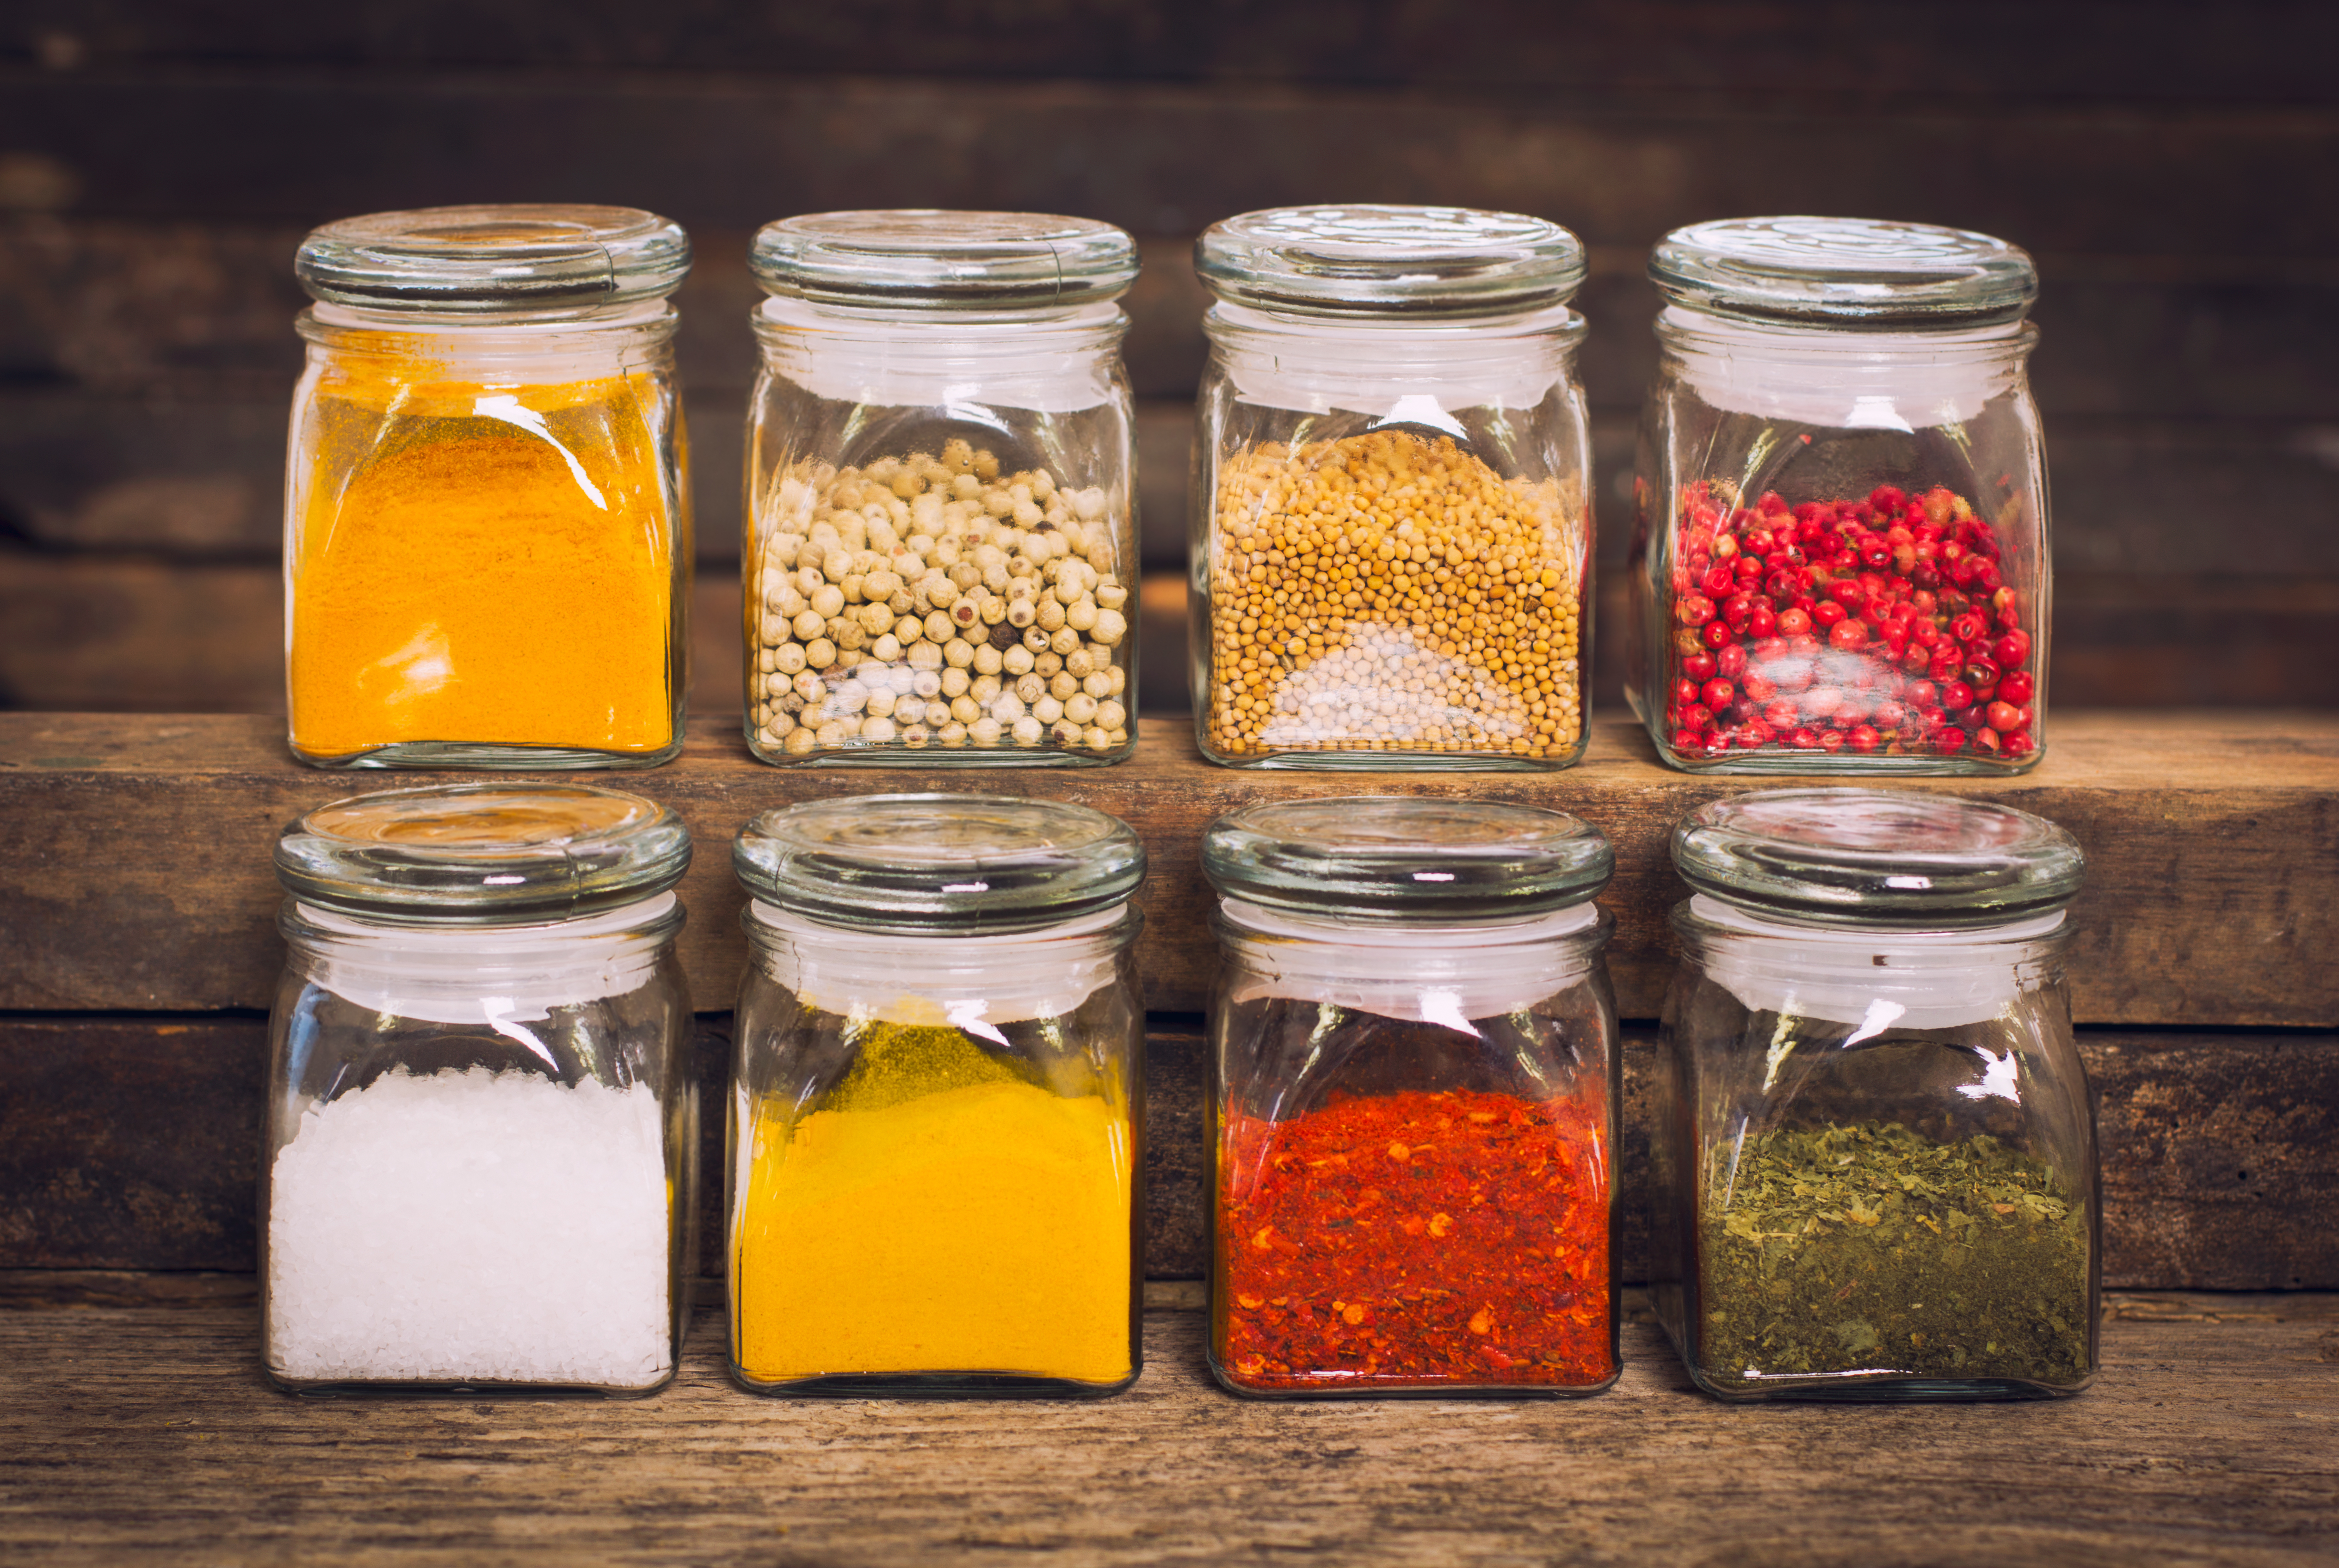 Two rows of spices in glass containers on a wooden shelf